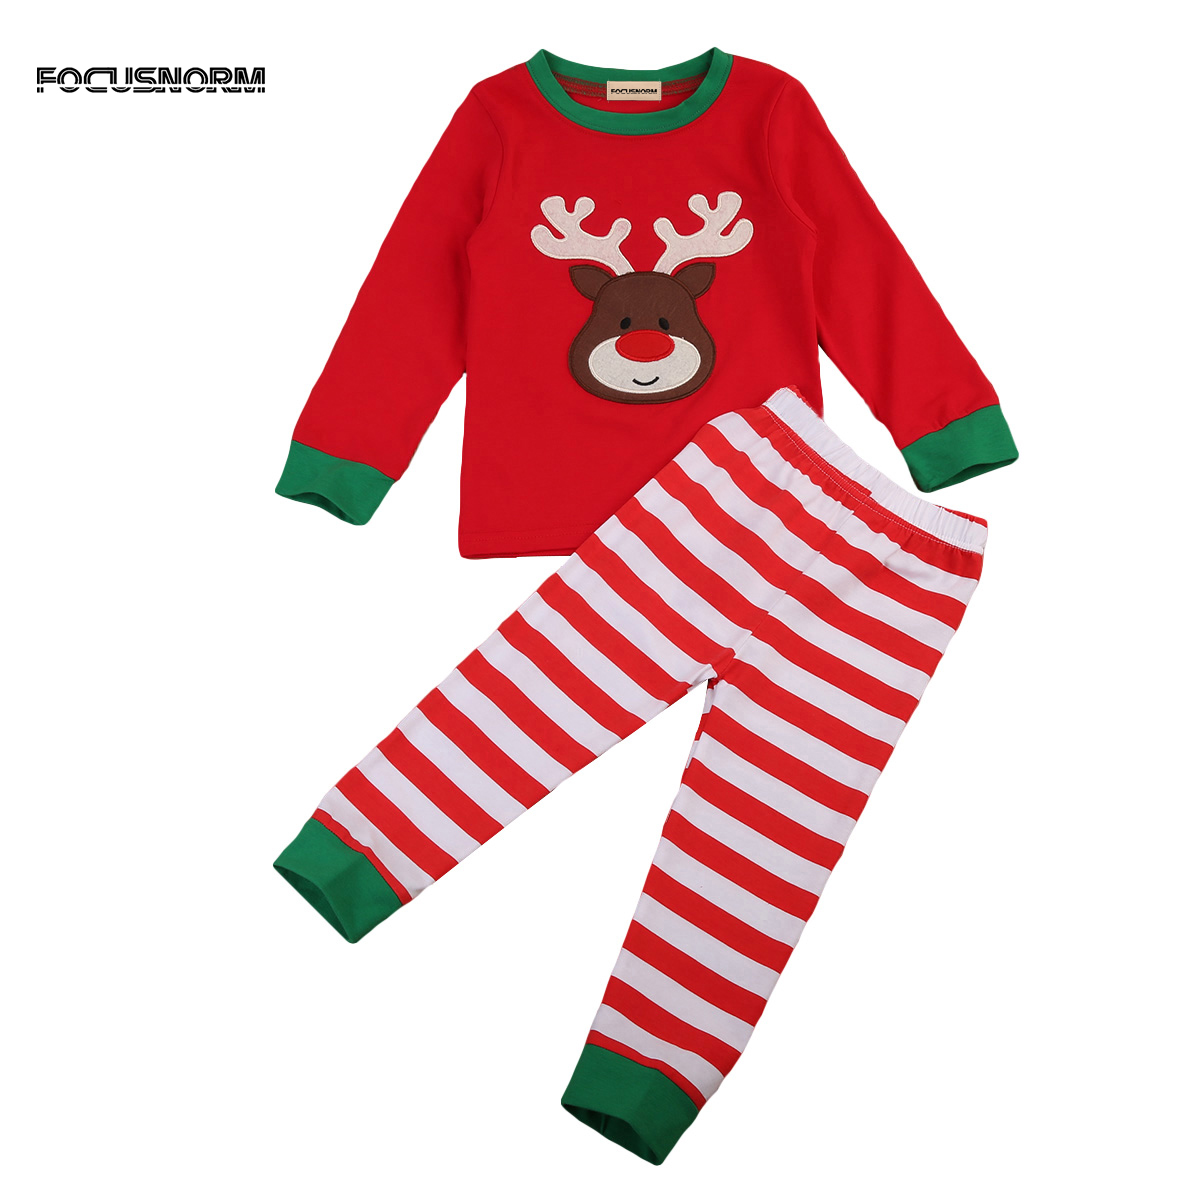 Christmas Cute Pajamas Child Girls Kids Striped Pajamas Cotton Comfortable Sleepwear Nightwear Clothing Set 1-7Y ...